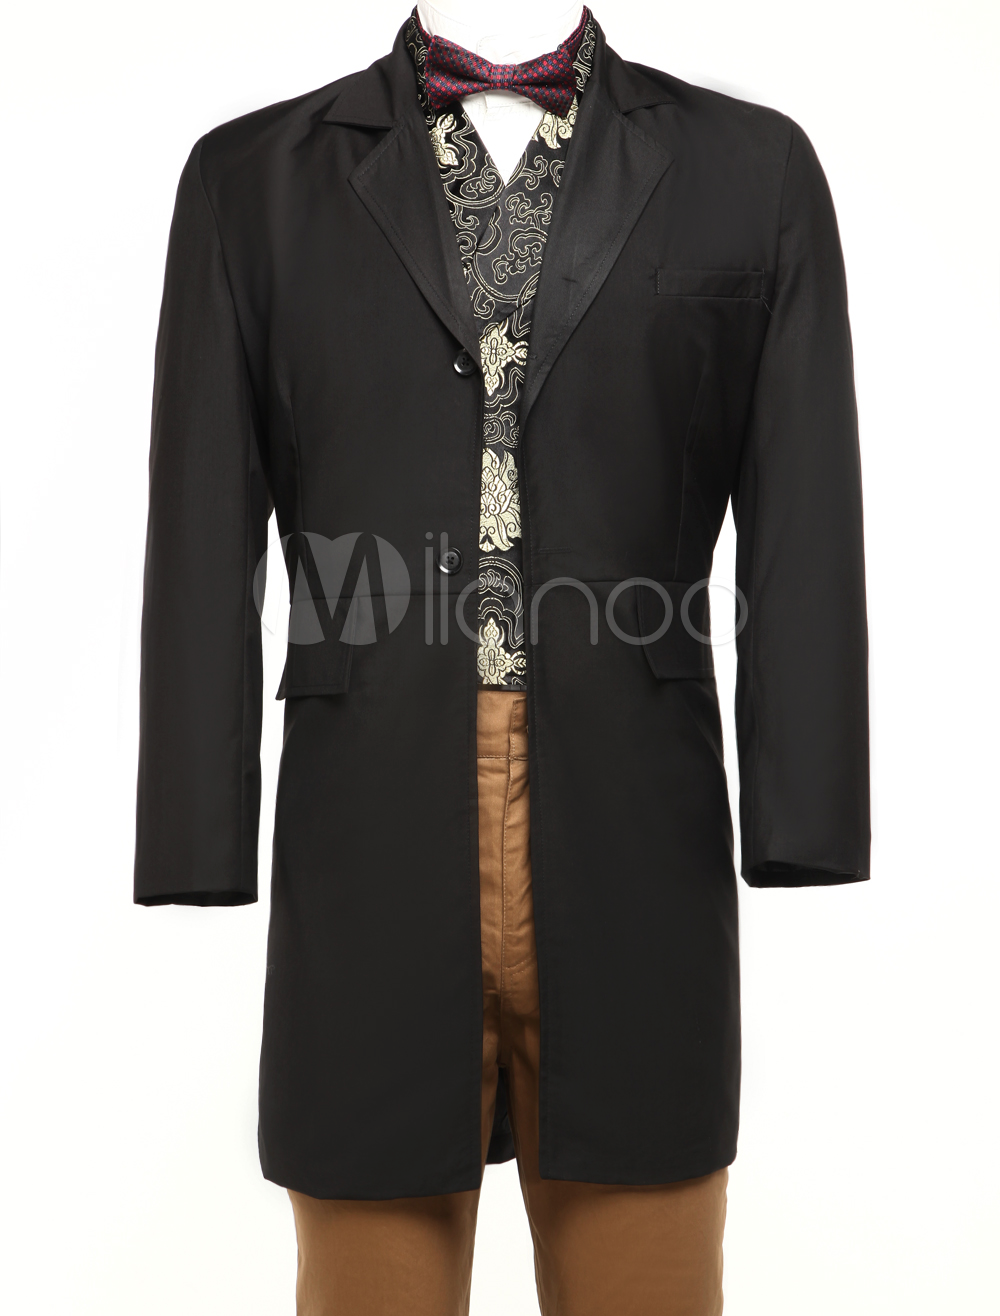 Full Length Jazz Cloth Mens Steampunk Swallowtail Coat $74.99 AT vintagedancer.com